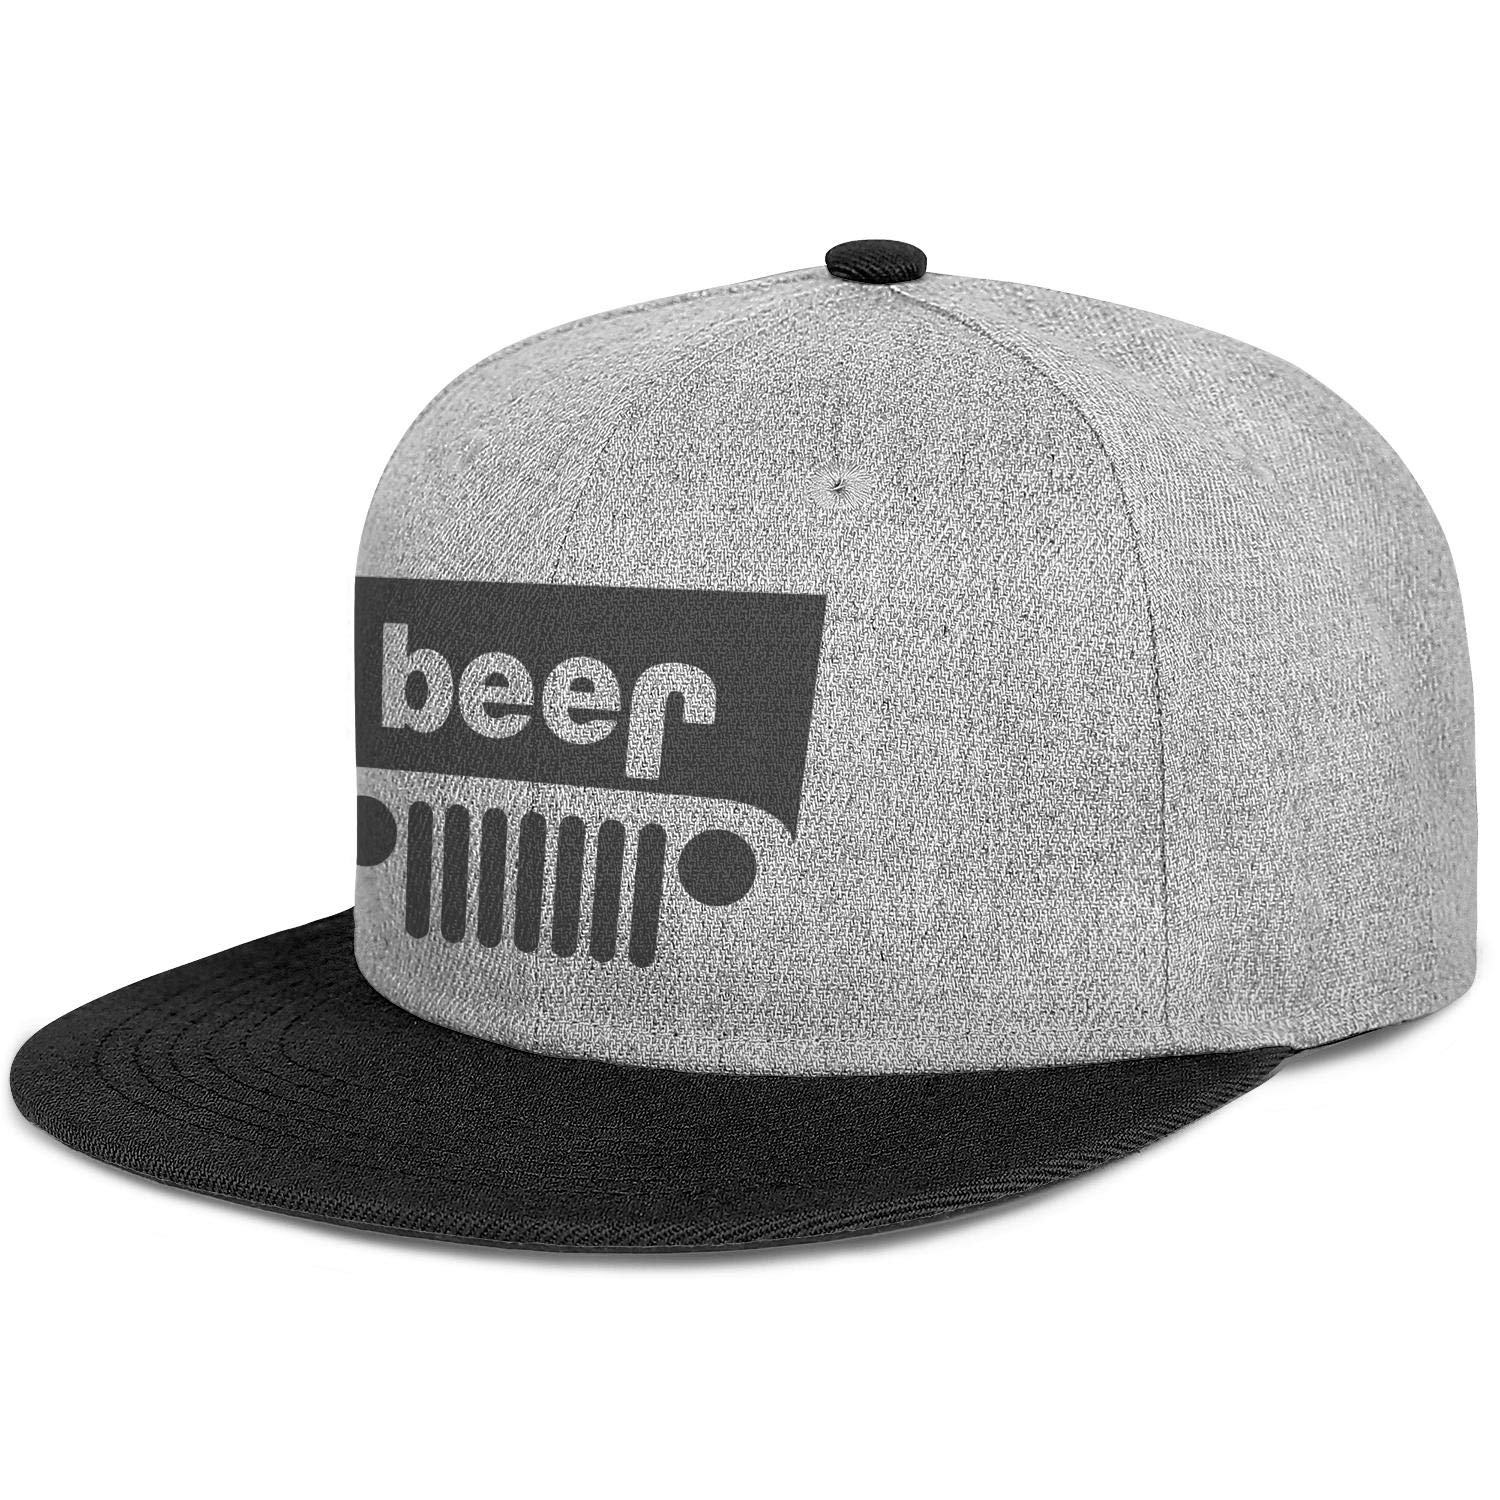 Unisex Baseball Hat-Beer Jeep Funny Drinking 1 Design Adjustable Snapback Sport Cap